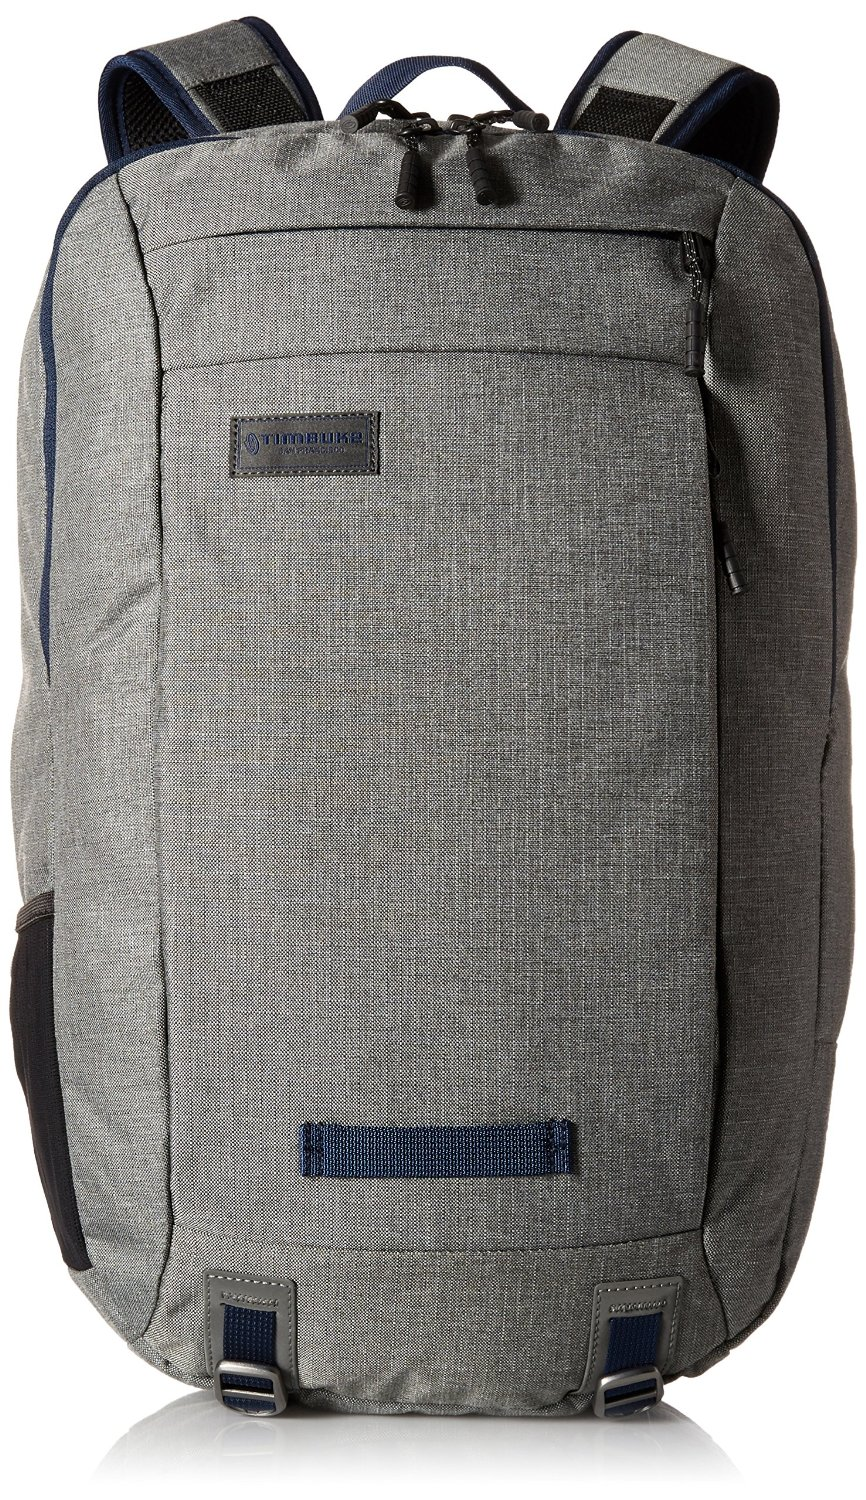 Harga Jual Billabong Command Skate Backpack Black Heather Surfstitch Giordano Jam Tangan Pria Rosegold Stainless Steel P1718 66 Amazon Timbuk2 Laptop Tsa Friendly Us9026 Bq Bargainqueen